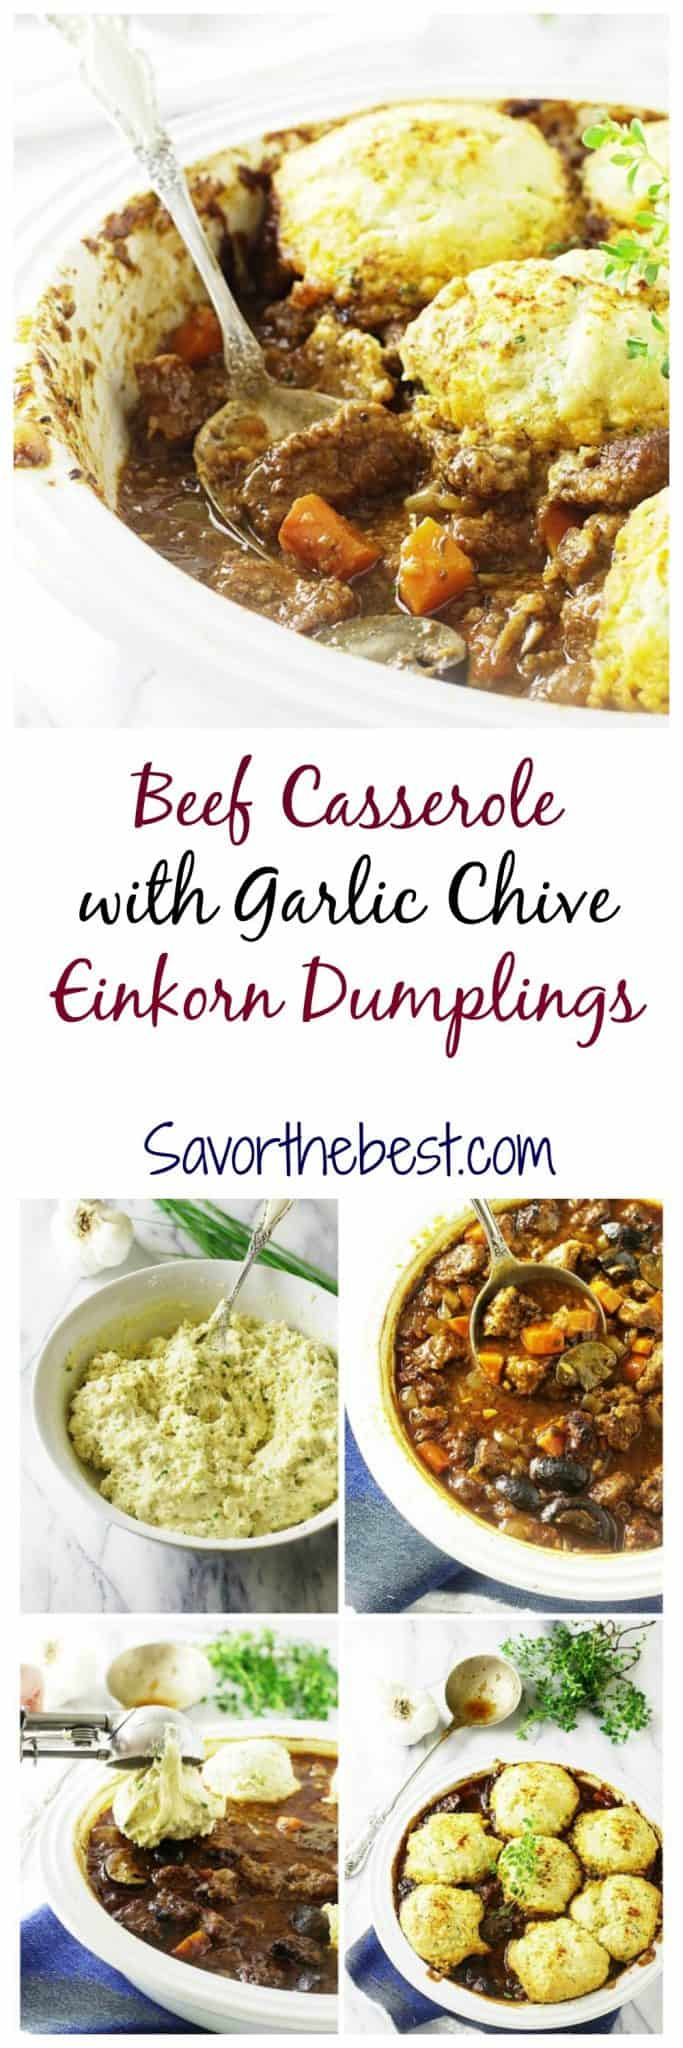 Beef casserole with garlic-chive einkorn dumplings is loaded with beef and veggies in a flavorful sauce and topped with garlic-chive einkorn dumplings.